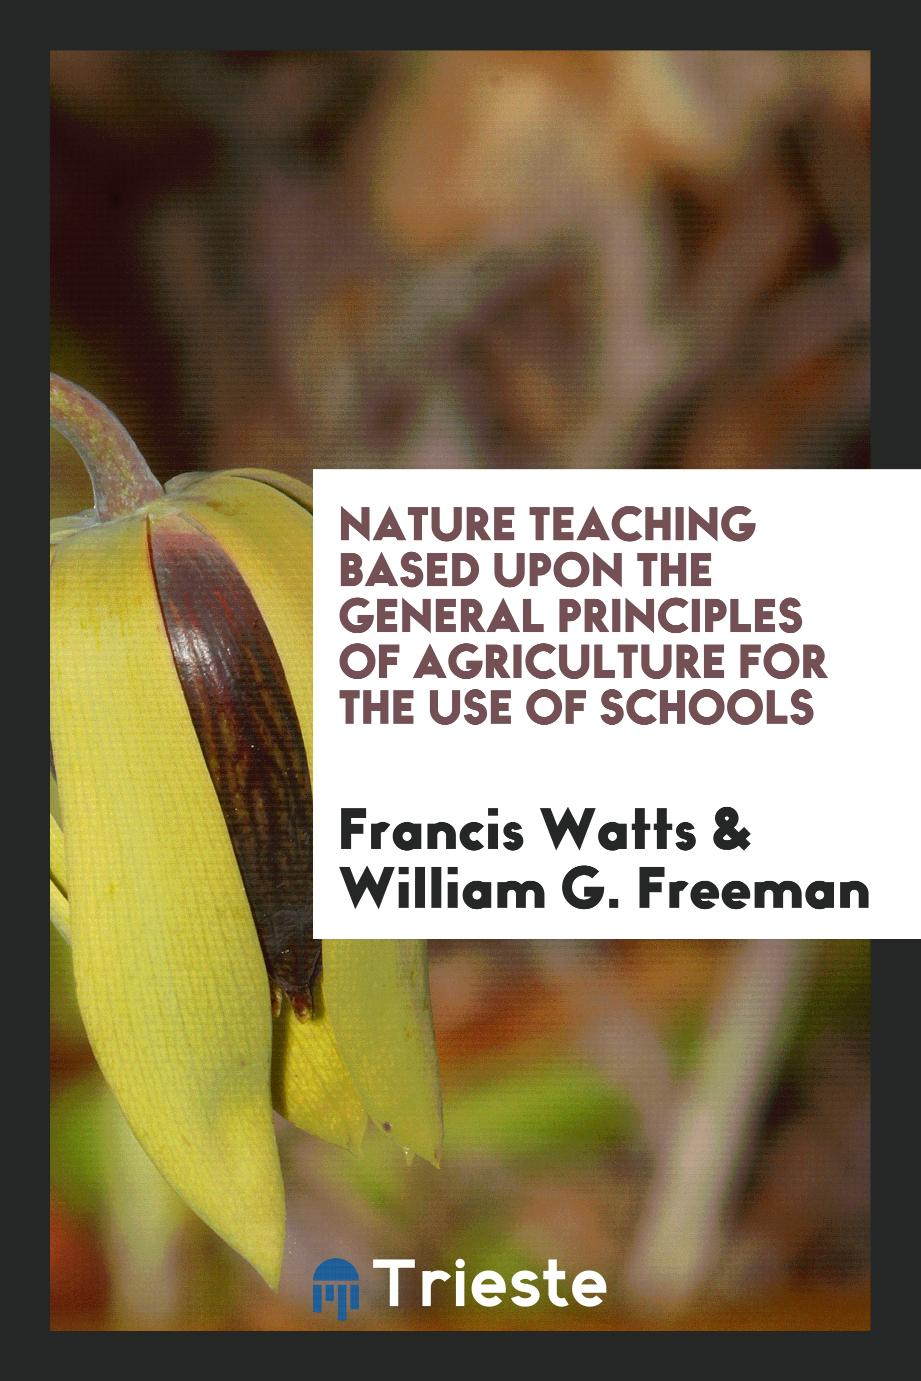 Nature Teaching Based upon the General Principles of Agriculture for the Use of Schools